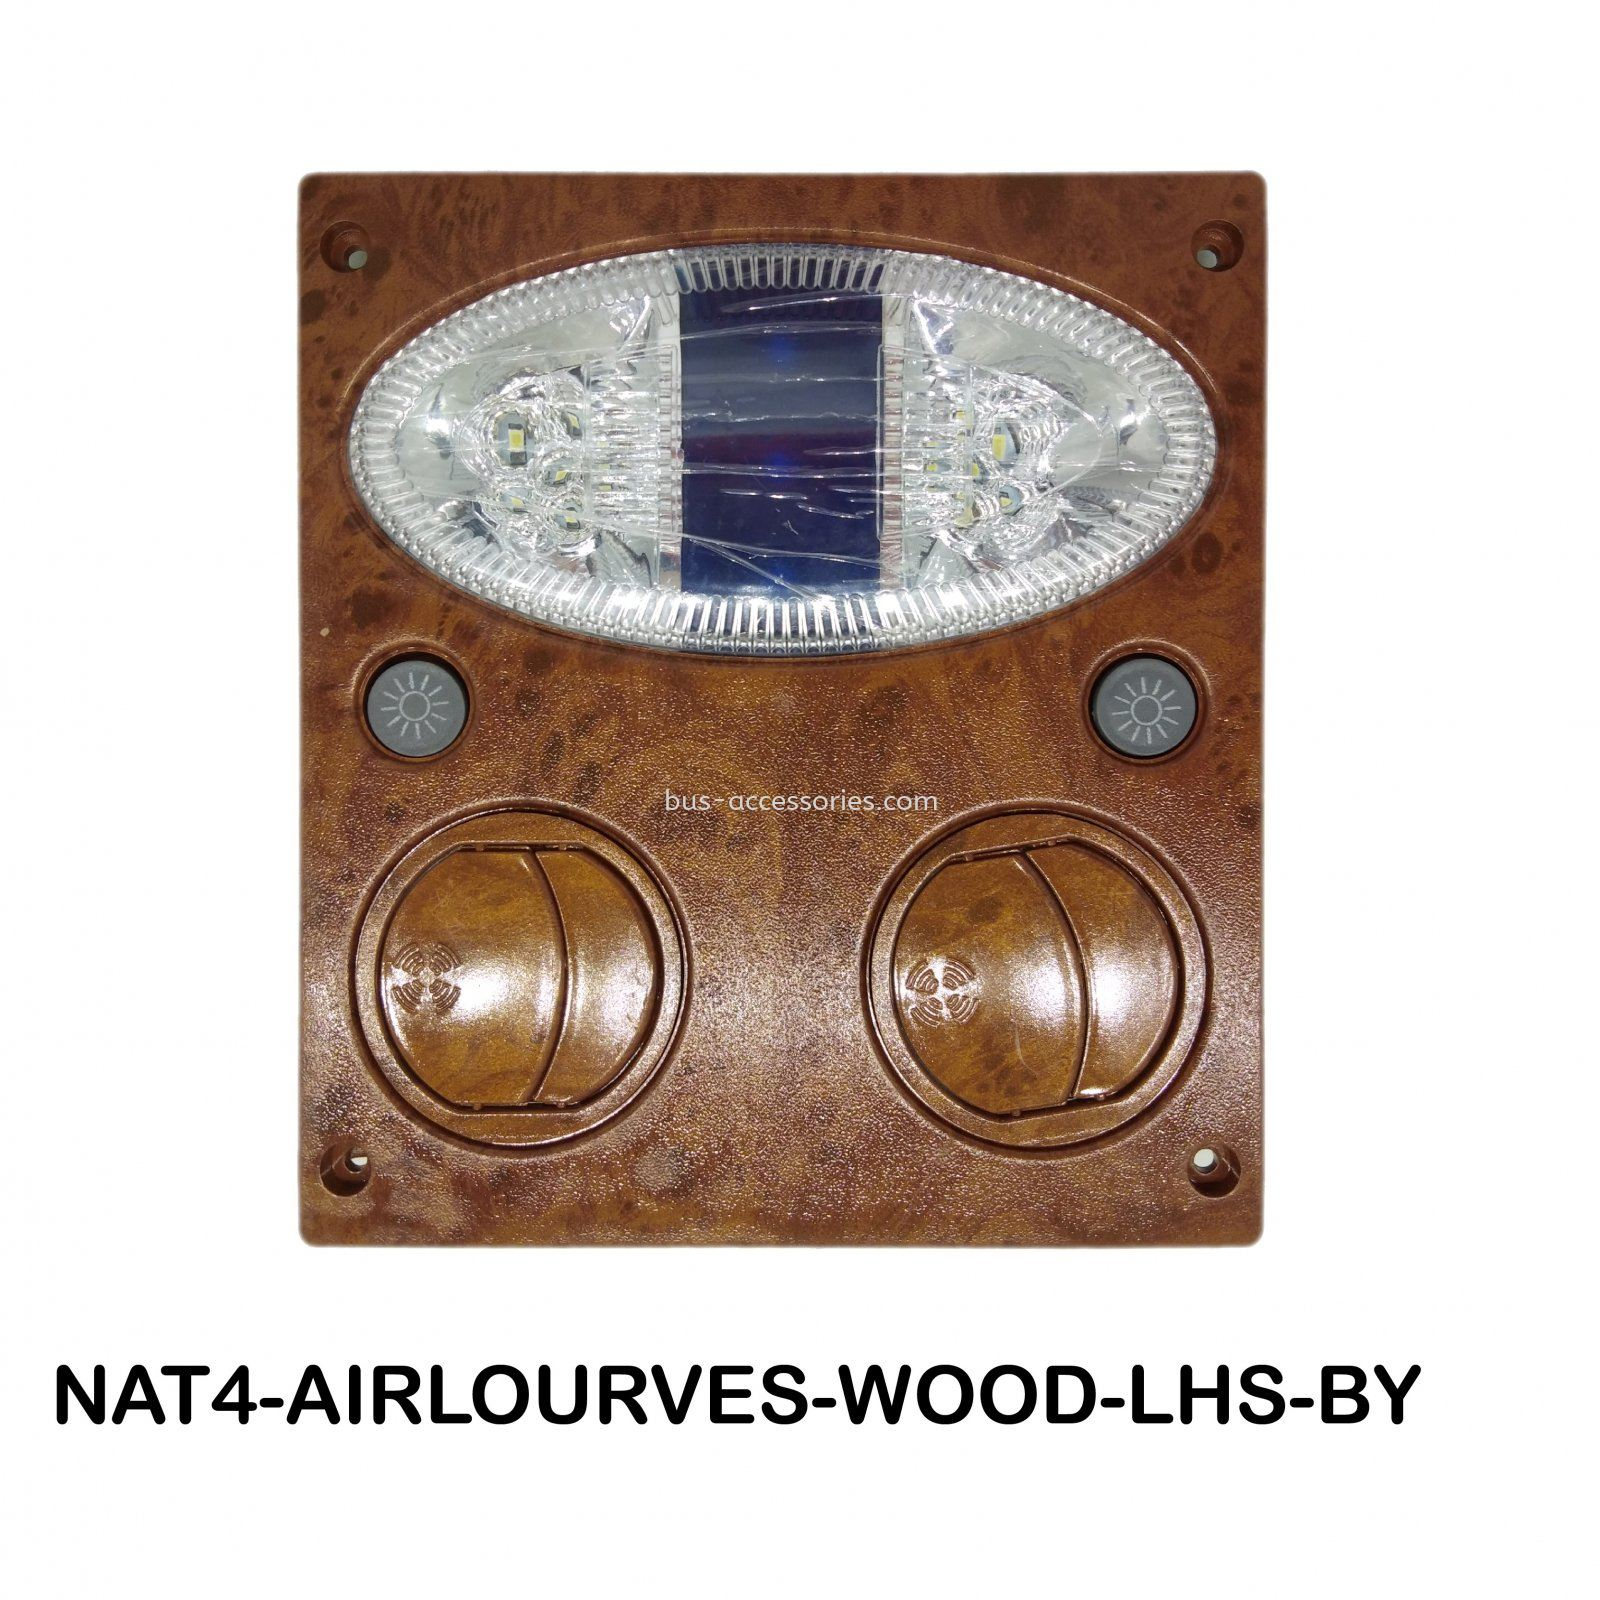 AIR LOURVES WOODEN 24V AIR LOURVES WOODEN 24V Auto interior parts bus wind outlet air vent louver with reading light MALAYSIA INDONESIA INDIA SINGAPORE THAILAND